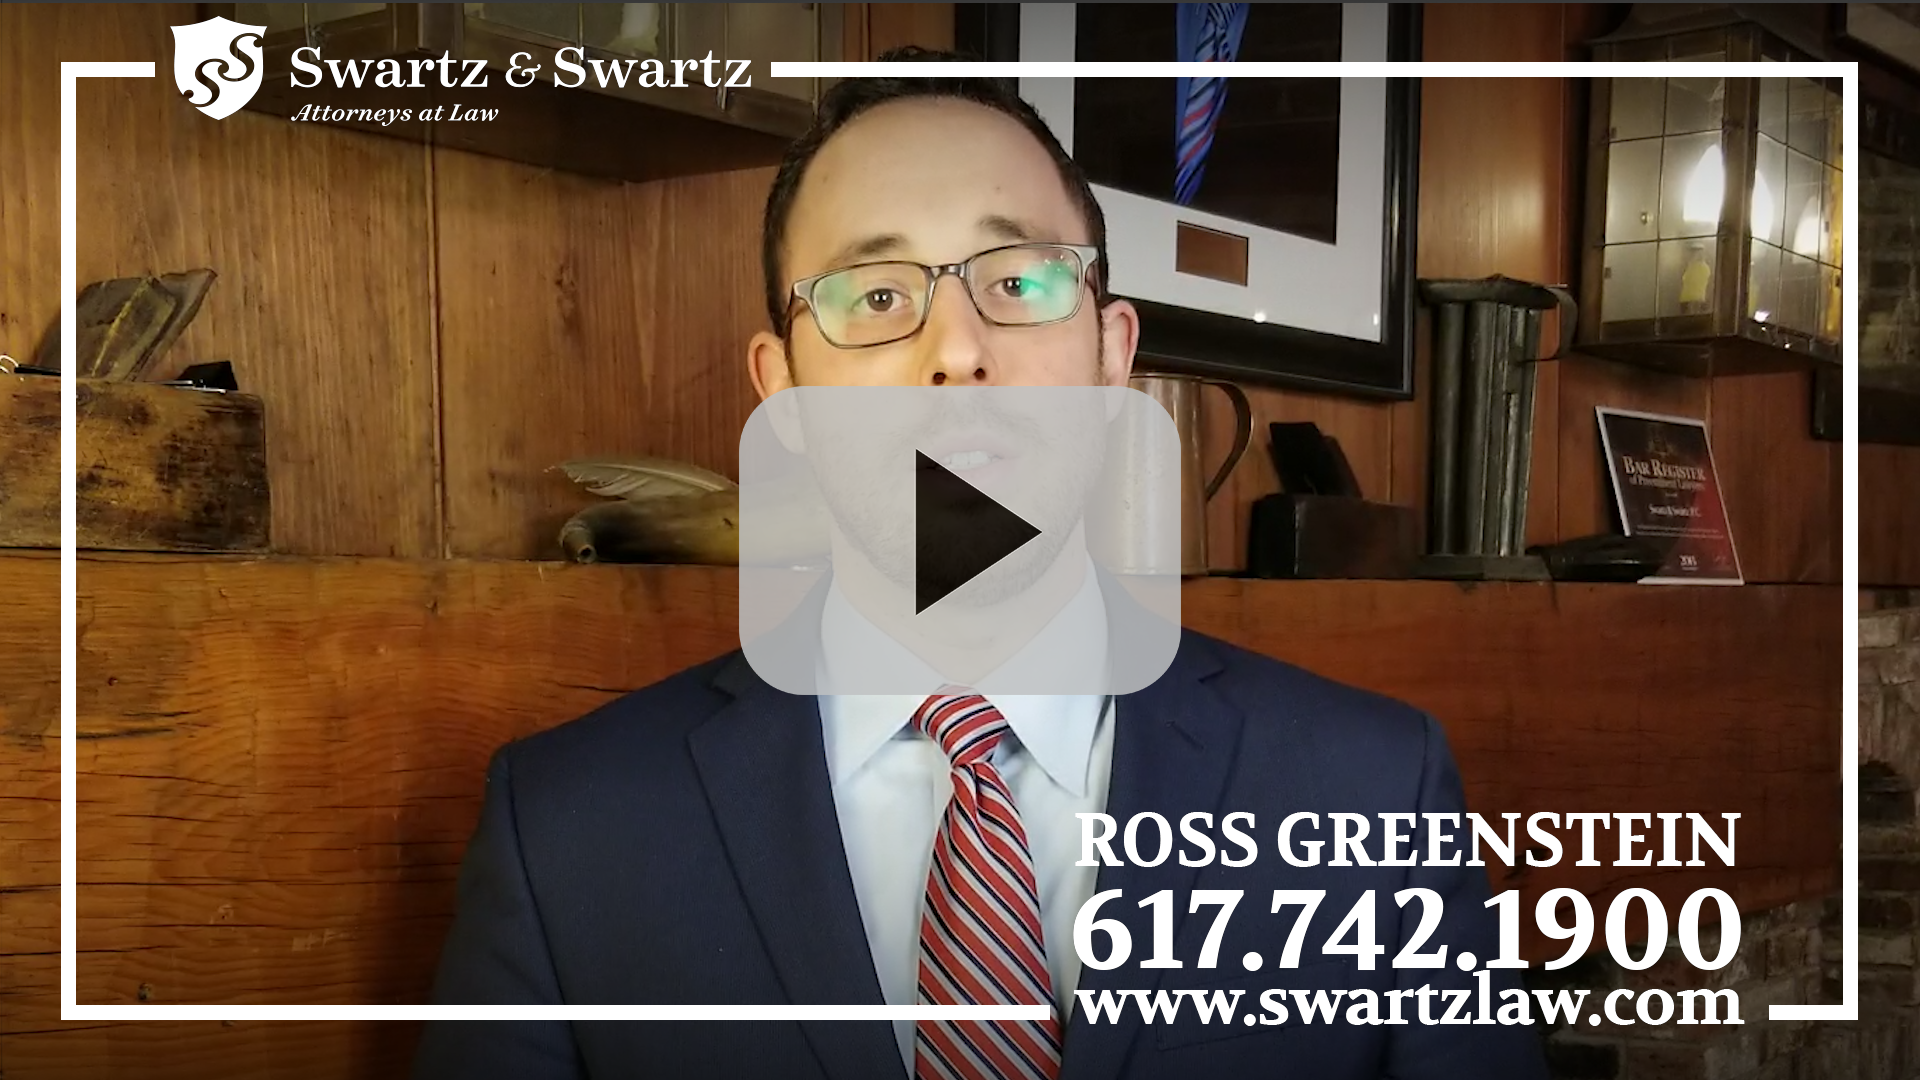 Ross Greenstein – Discusses How Swartz & Swartz Can Help If You're Involved In a Rideshare Accident